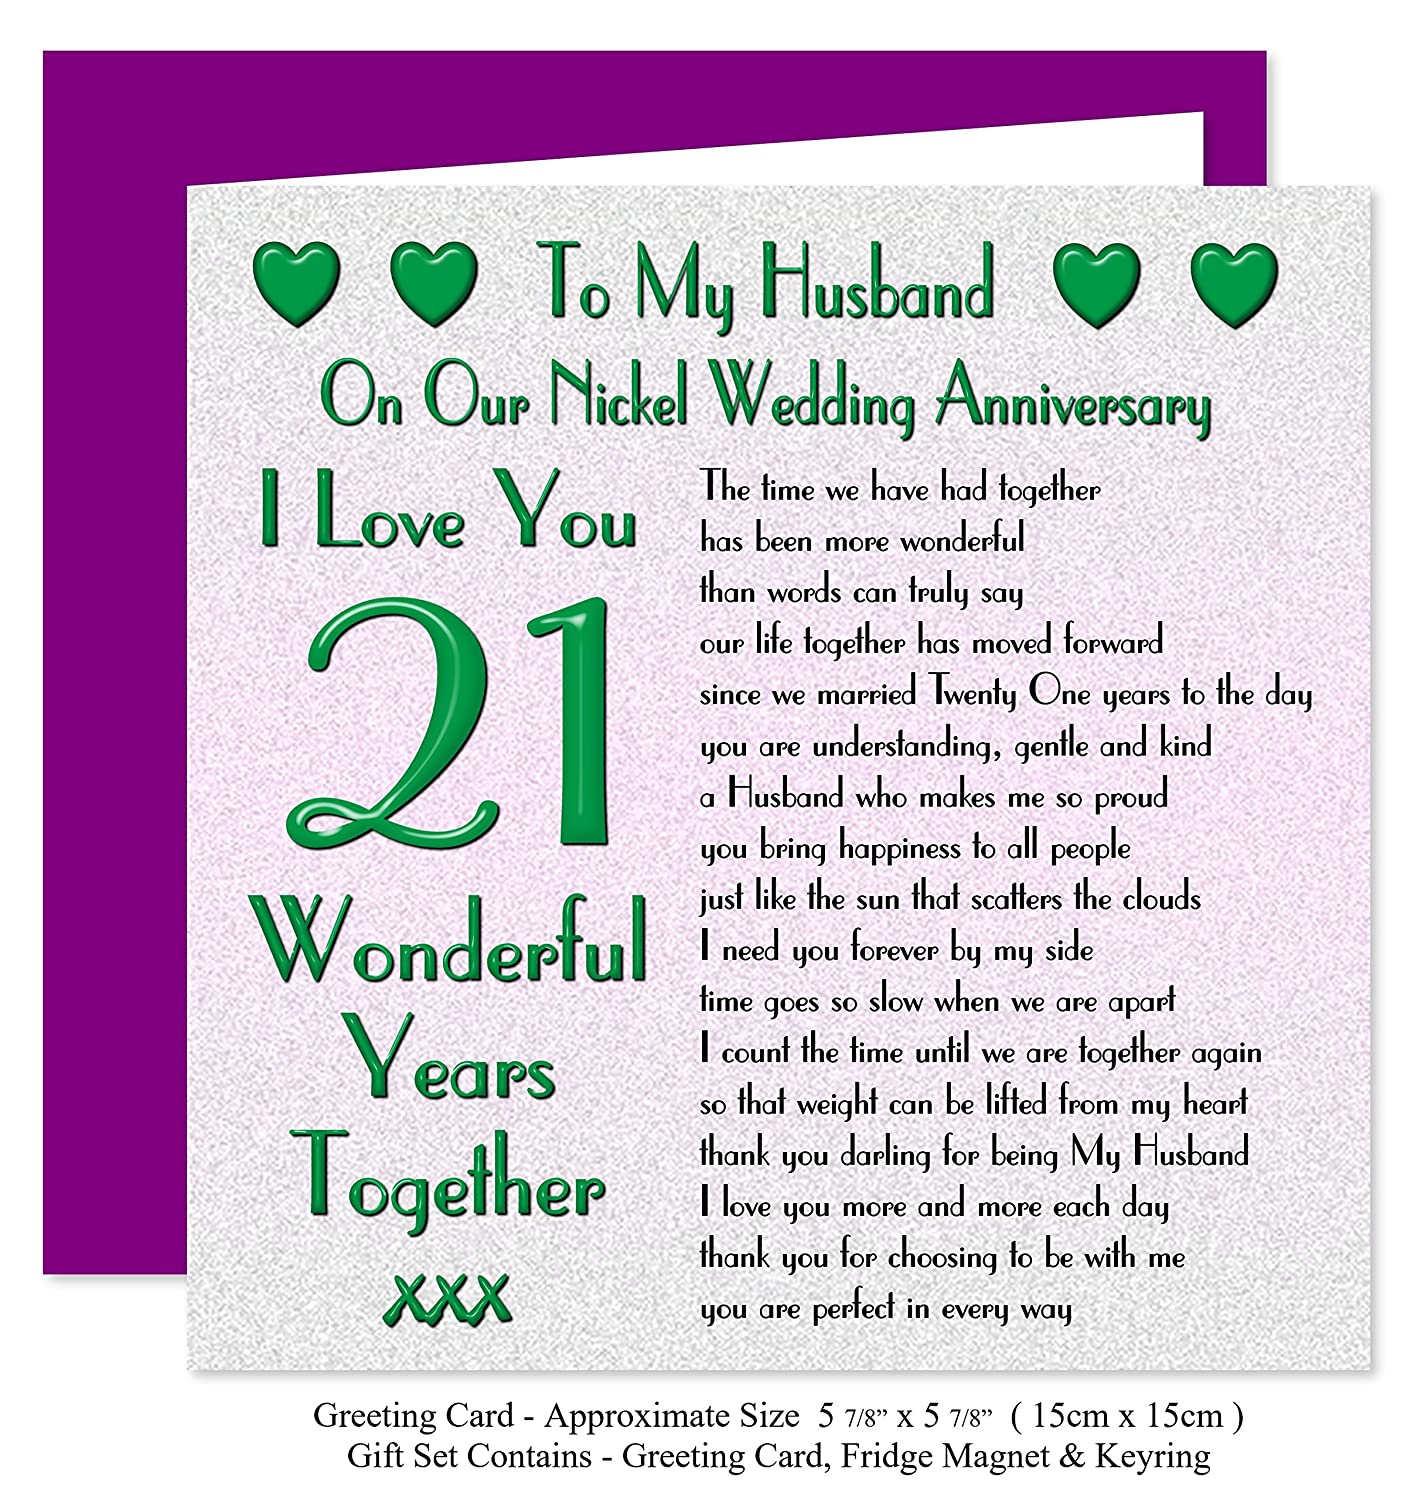 21st Wedding Anniversary.My Husband 21st Wedding Anniversary Gift Set Card Keyring Fridge Magnet Present On Our Nickel Anniversary 21 Years Sentimental Verse I Love